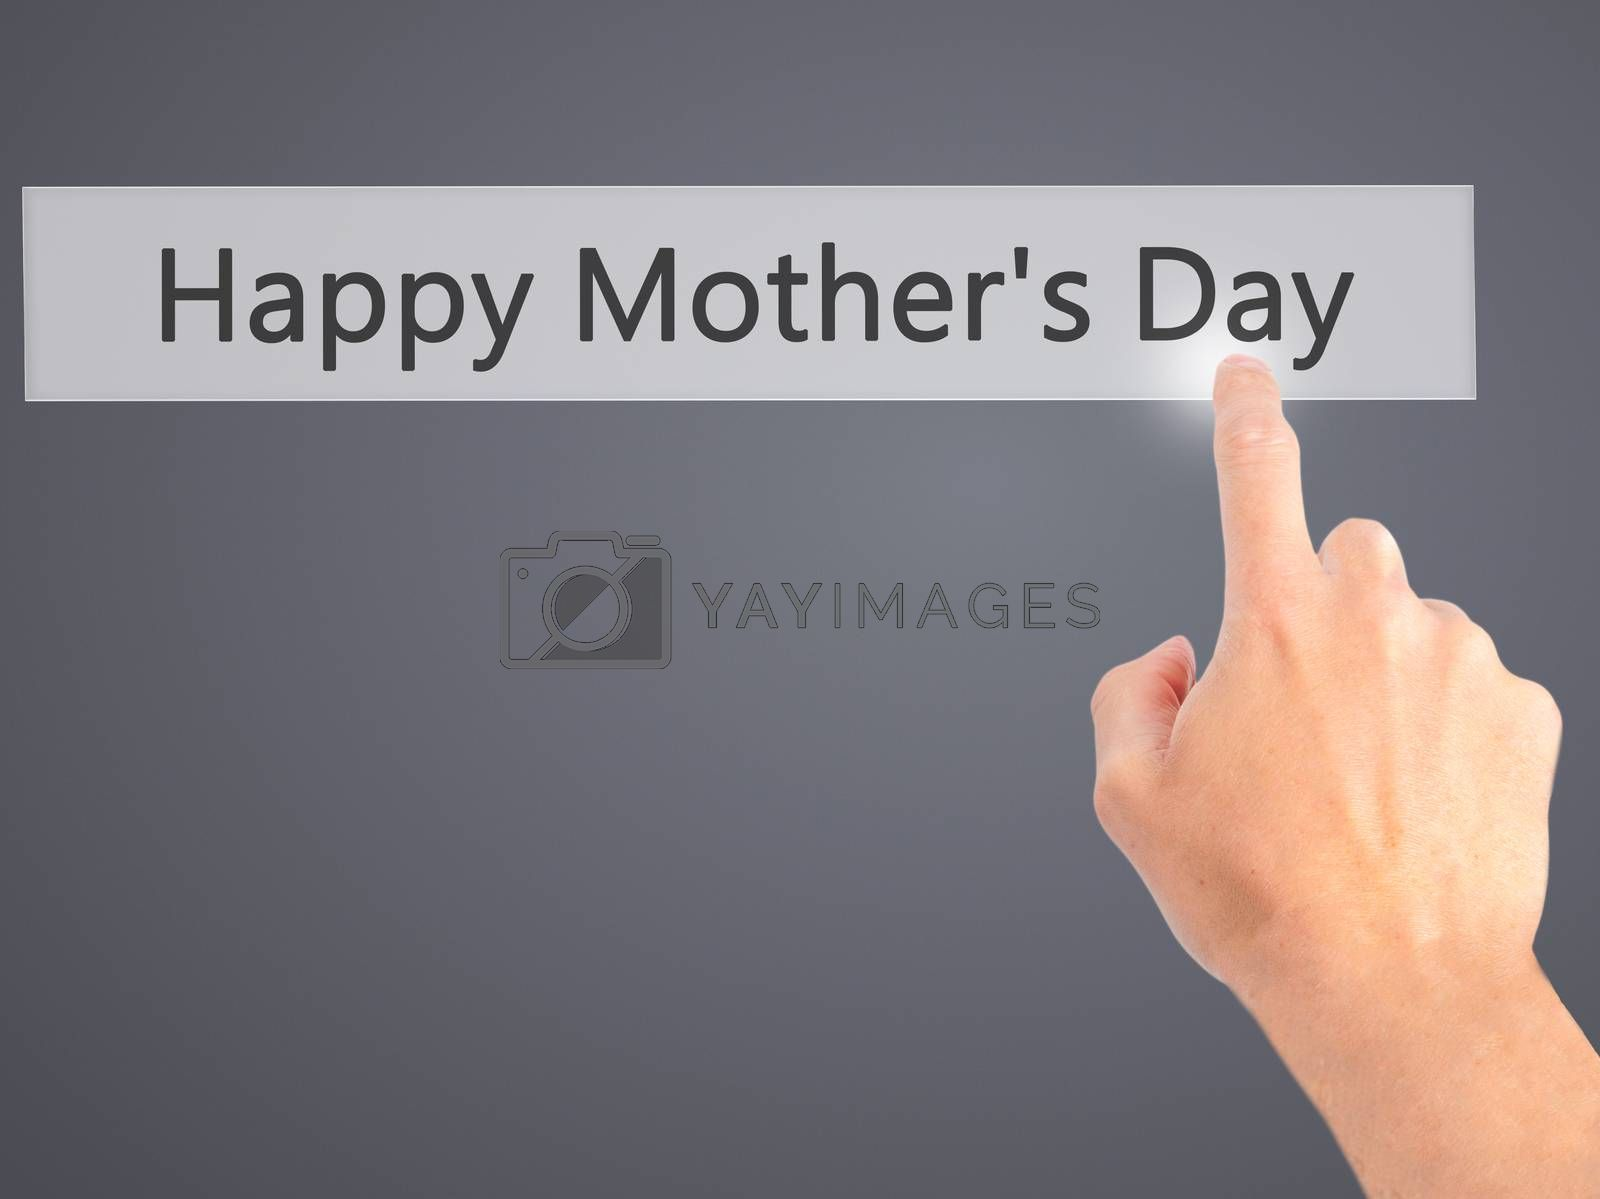 Happy Mother's Day - Hand pressing a button on blurred backgroun by jackald